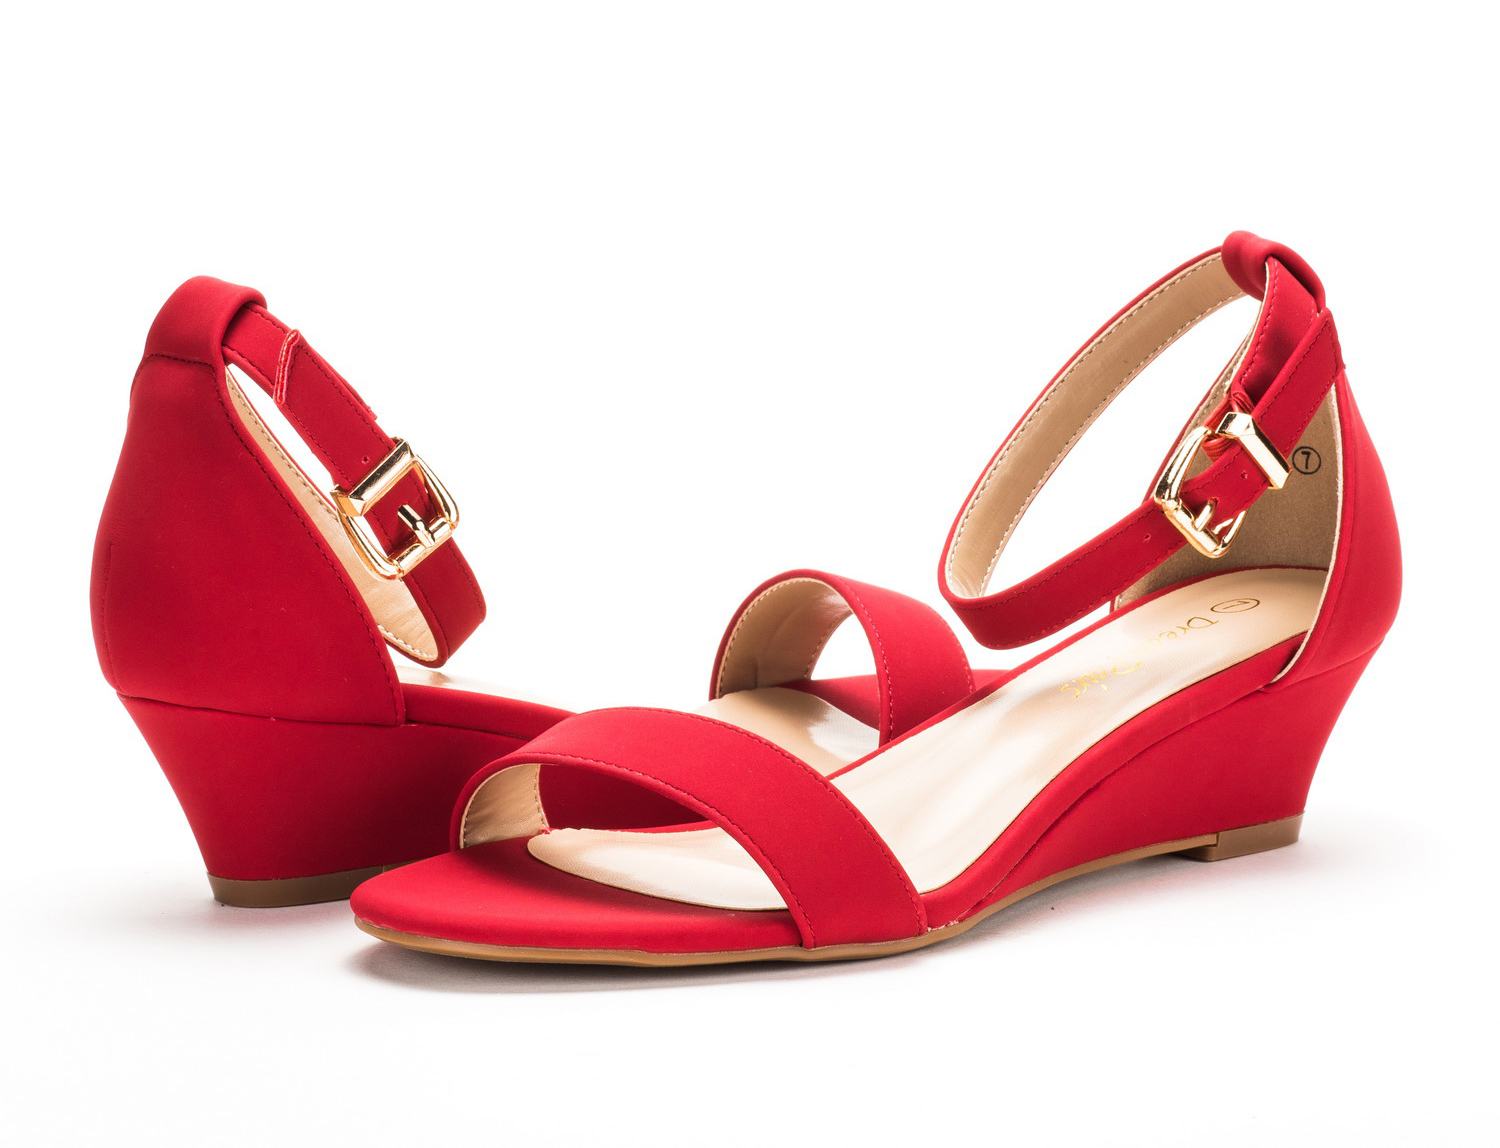 DREAM-PAIRS-Women-039-s-Ankle-Strap-Low-Wedge-Sandals-Open-Toe-Casual-Dress-Shoes thumbnail 35